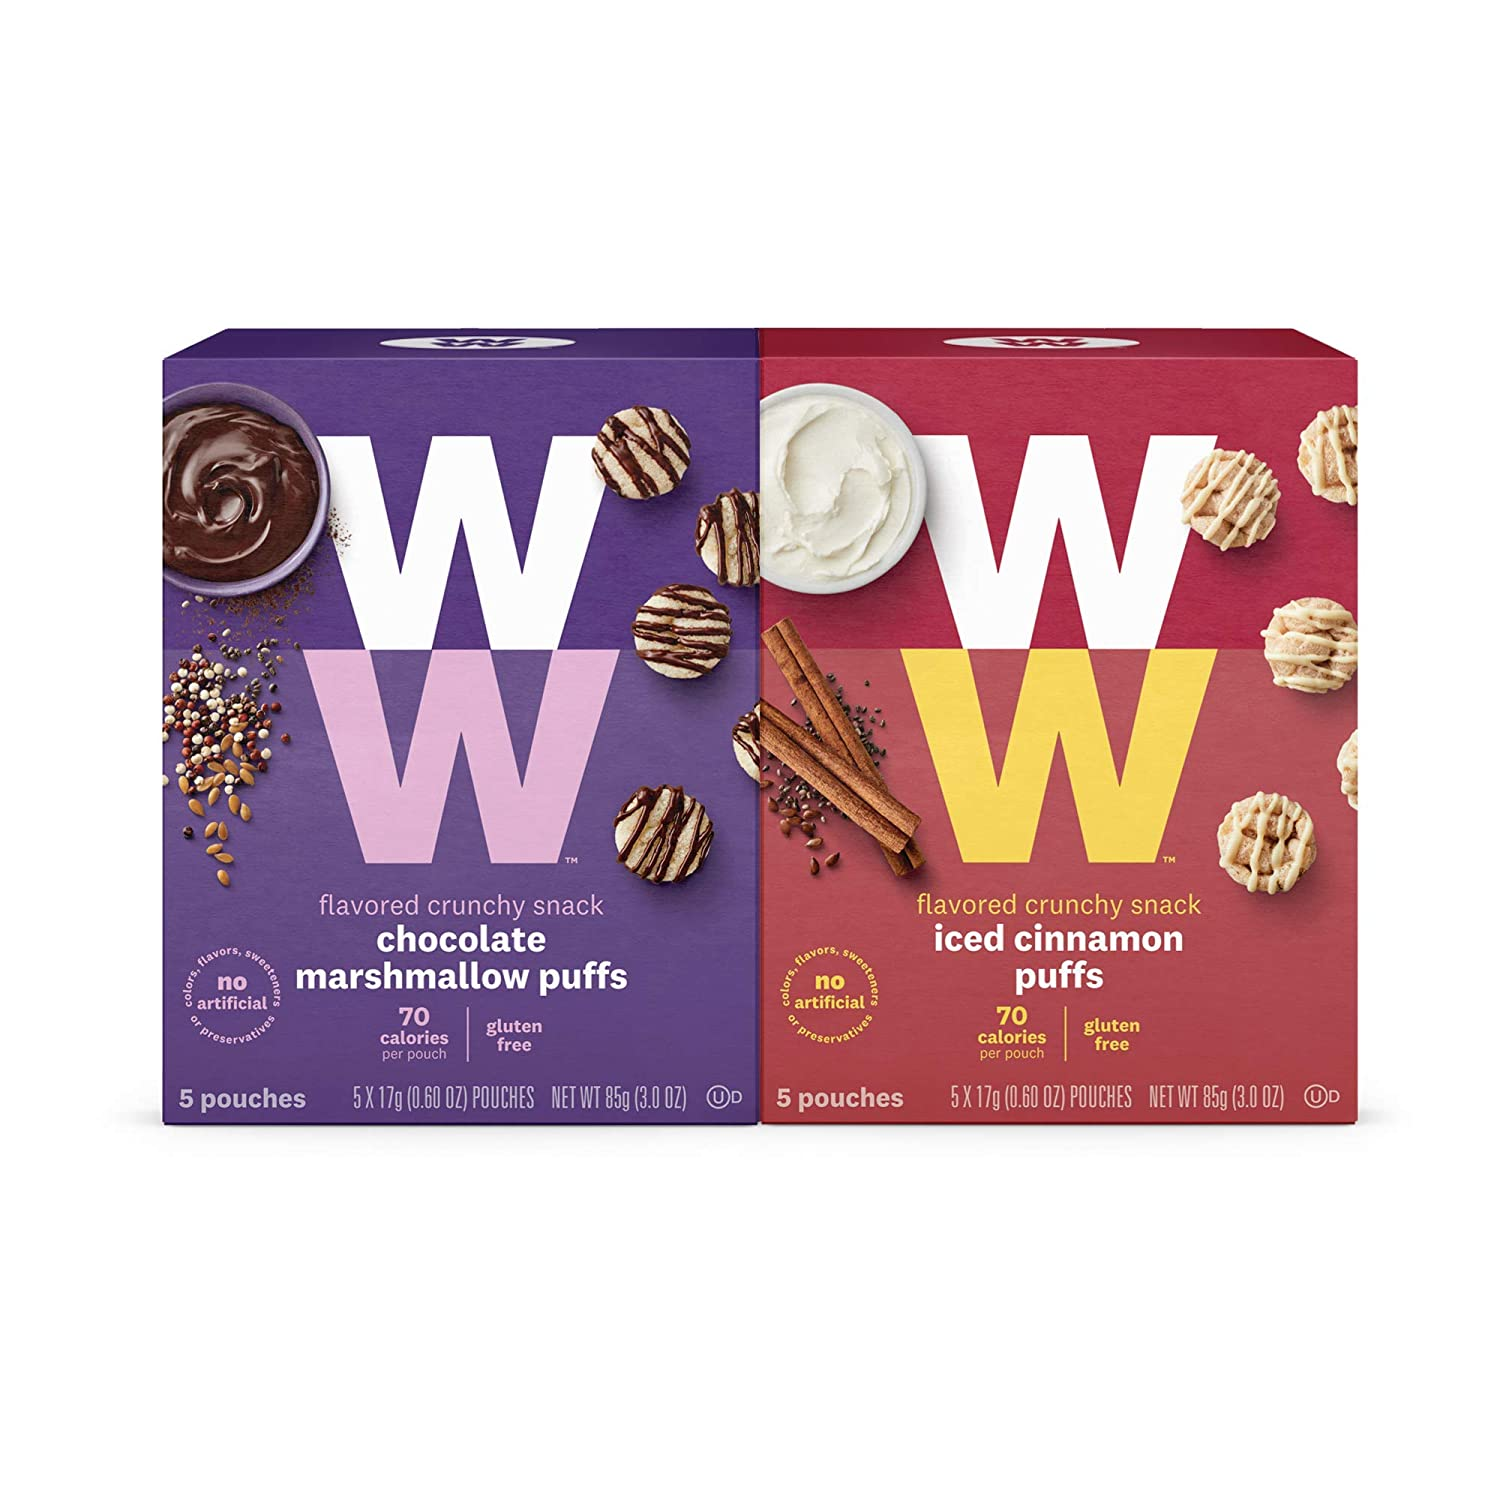 WW Sweet Variety Pack, Iced Cinnamon & Chocolate Marshmallow Puffs, 2 SmartPoints, 5 of Each Flavor (10 Count Total) - Weight Watchers Reimagined